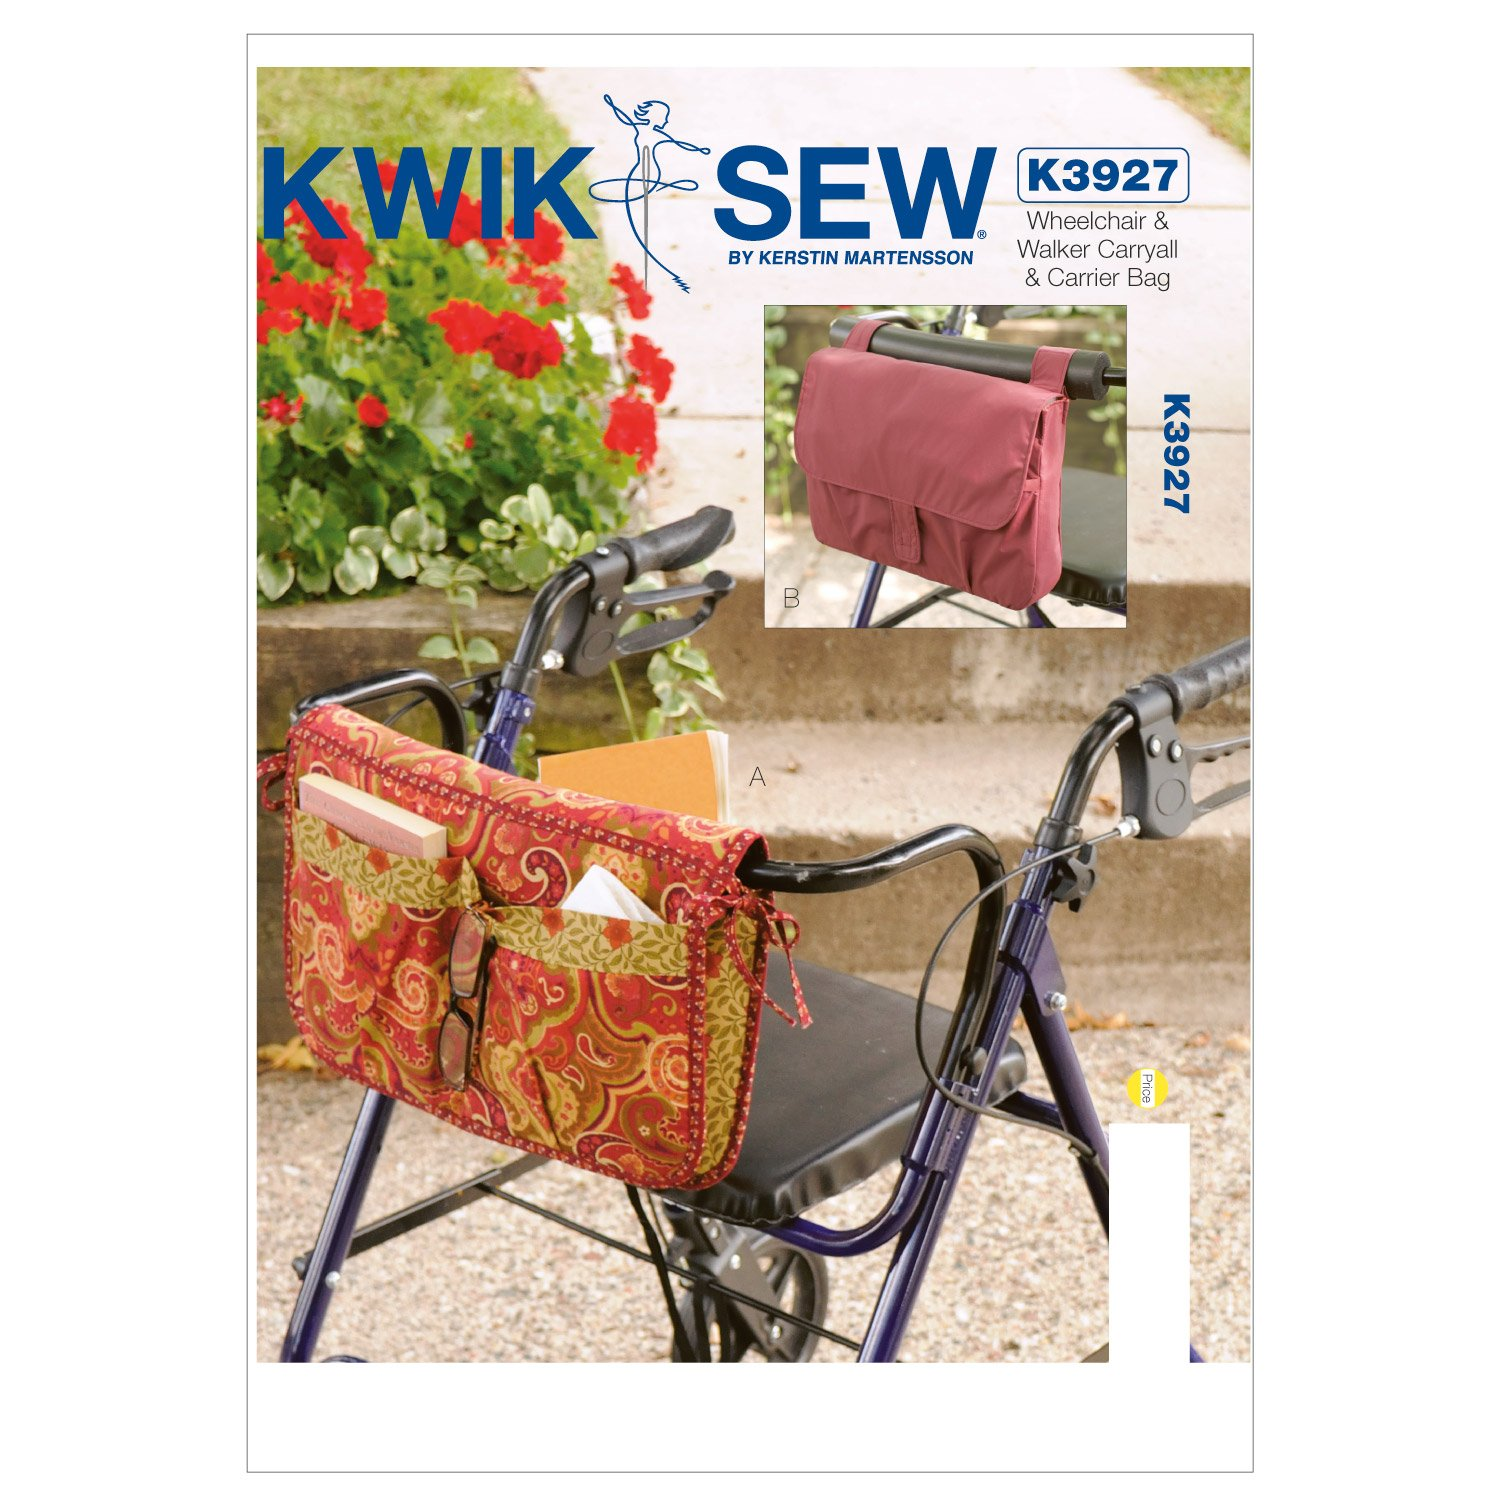 Kwik Sew K3927 Wheelchair and Walker Carryall and Carrier Bag Sewing Pattern, No Size McCall Pattern Company K3927OSZ